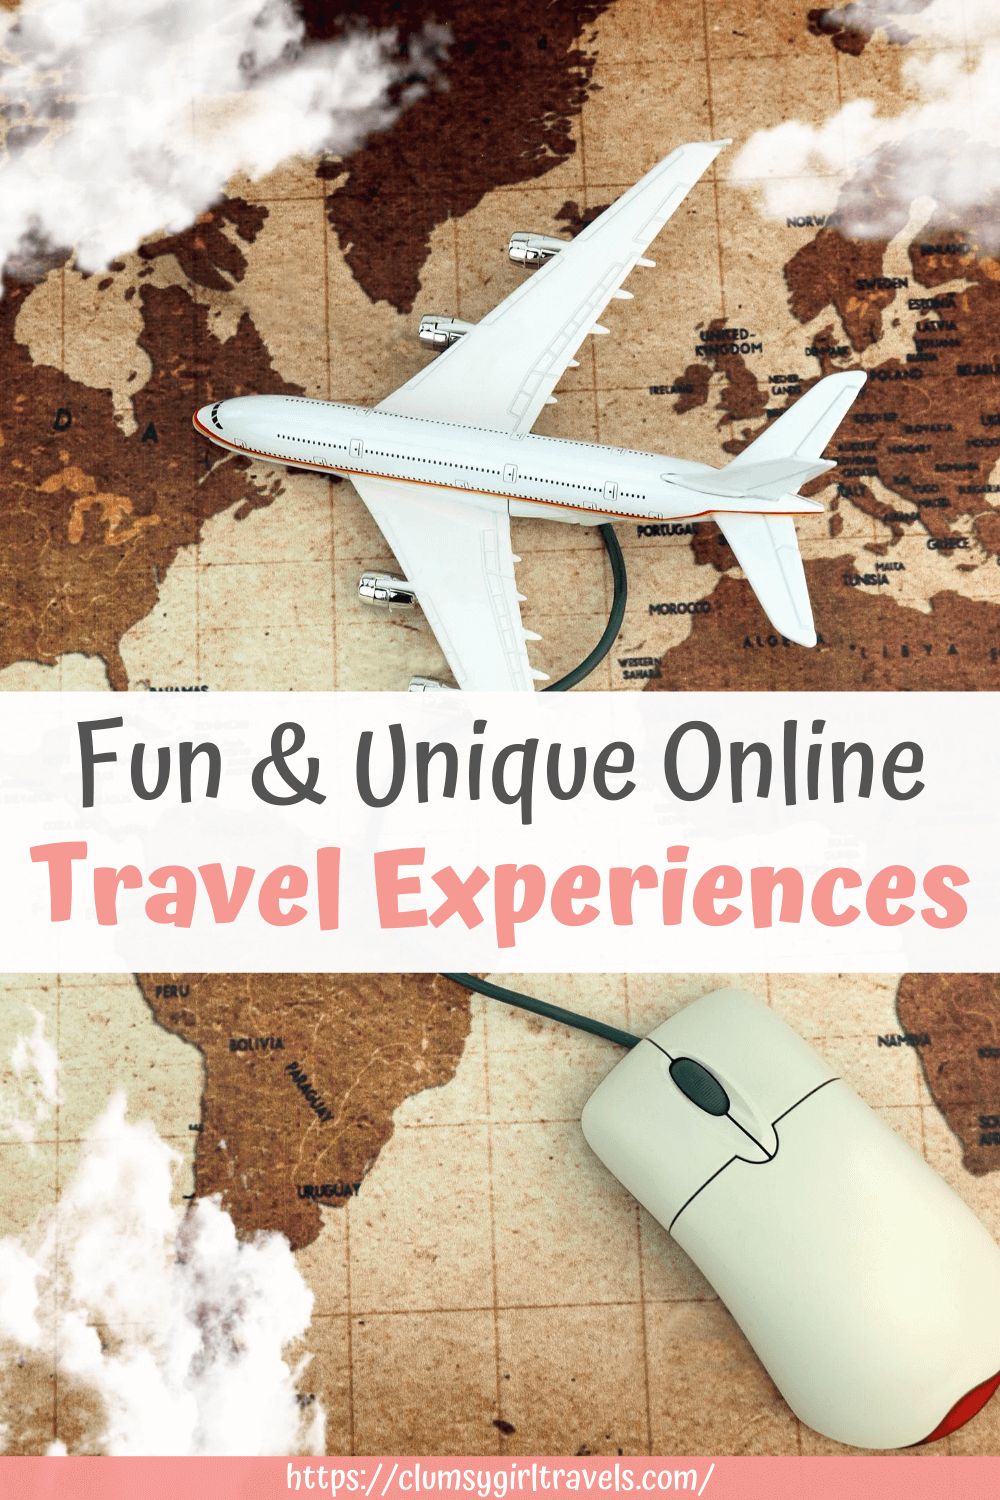 These fantastic online travel experiences will take you far away from the comfort of your home. Take cooking classes, learn about different cultures, delve into world history and more.